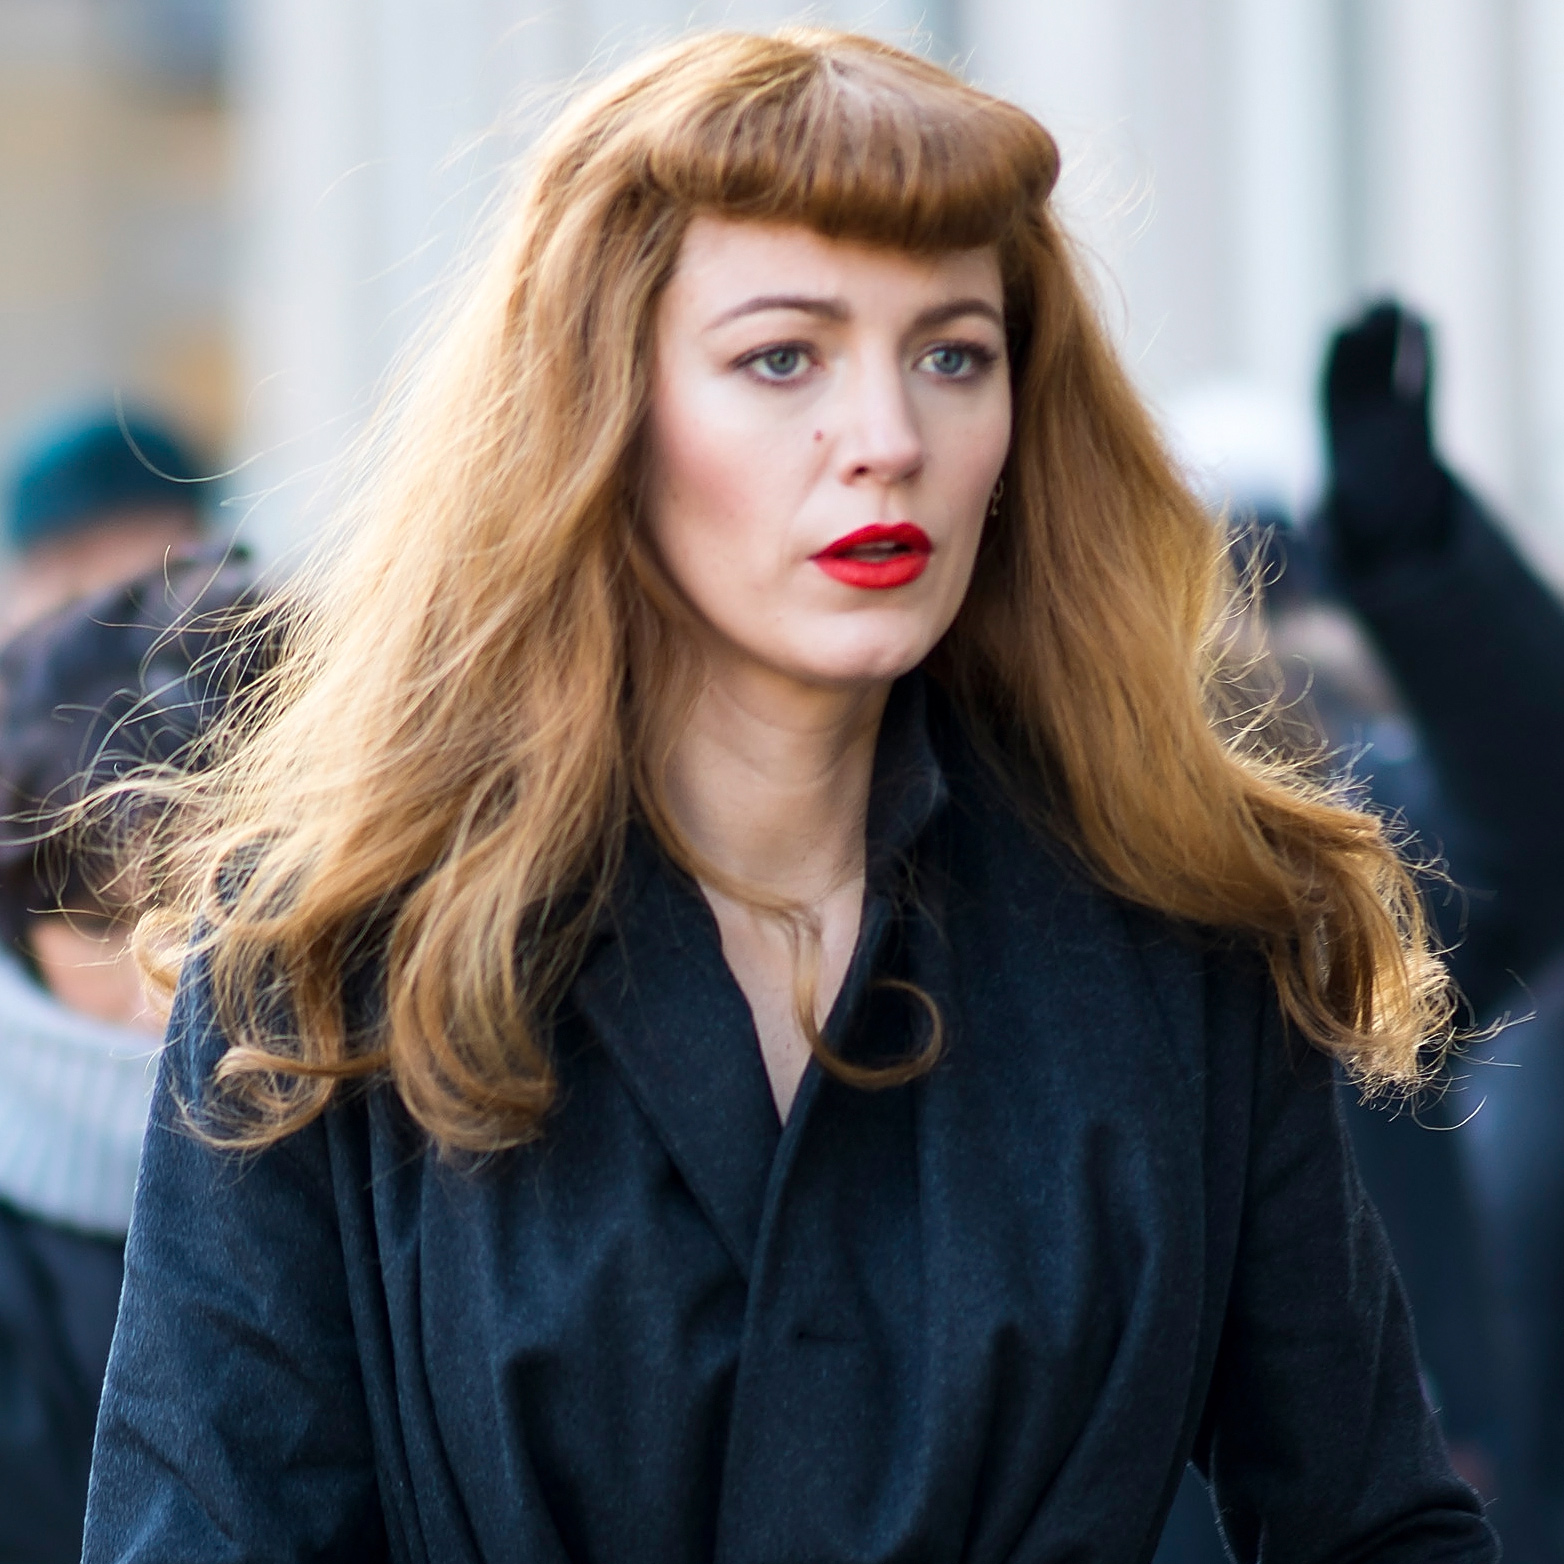 Blake Lively Wears Micro-Bangs and Red Hair on The Rhythm ...